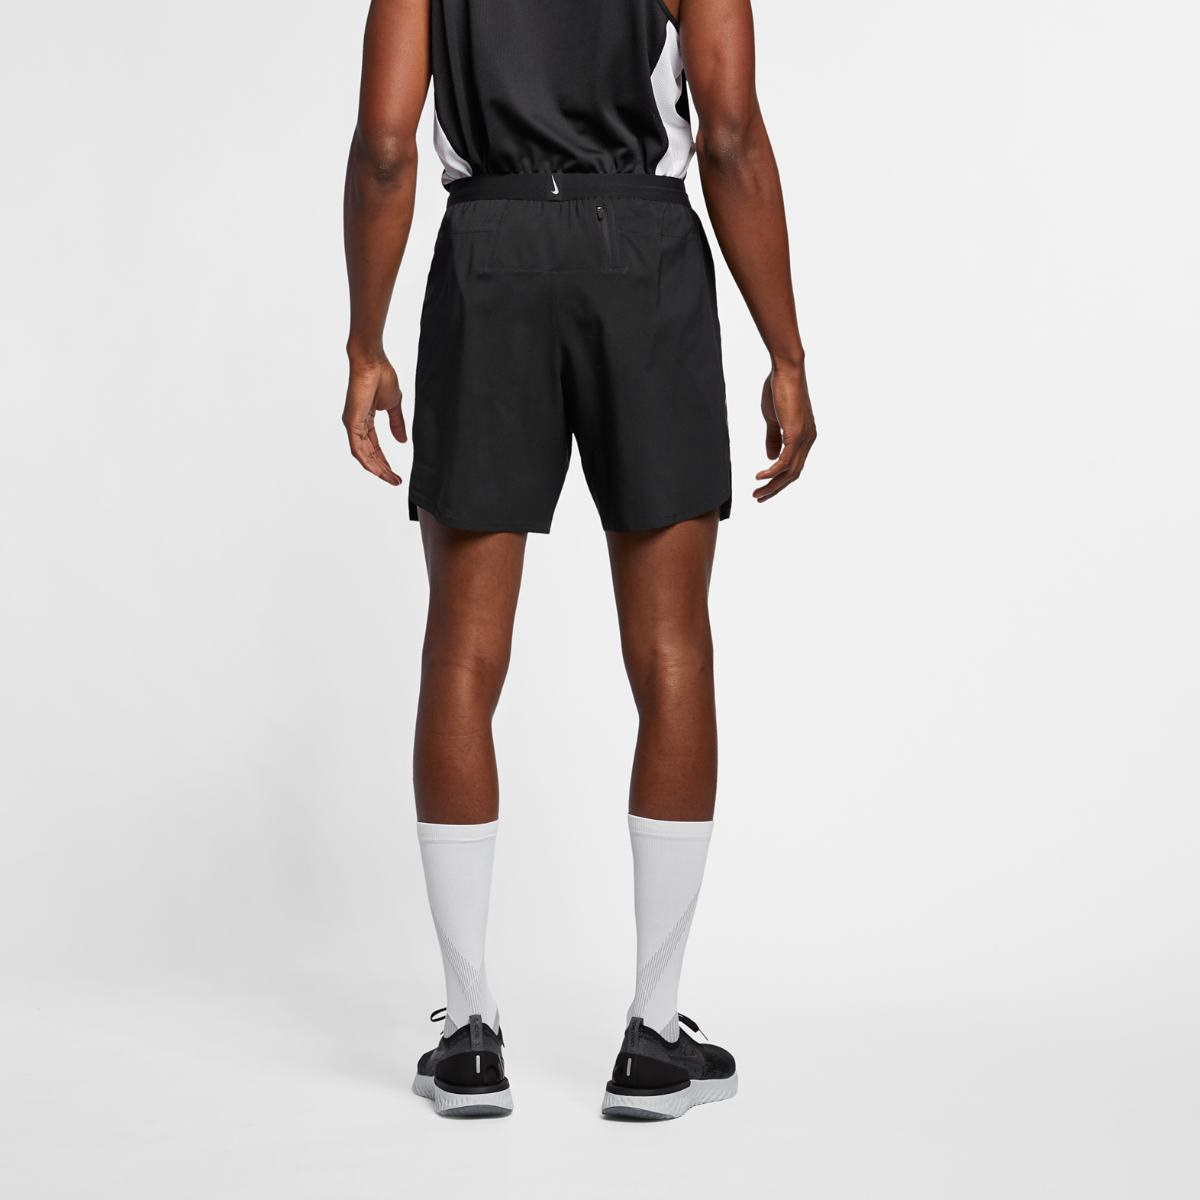 Шорты Nike M NK FLX STRIDE SHORT 7IN 2IN1